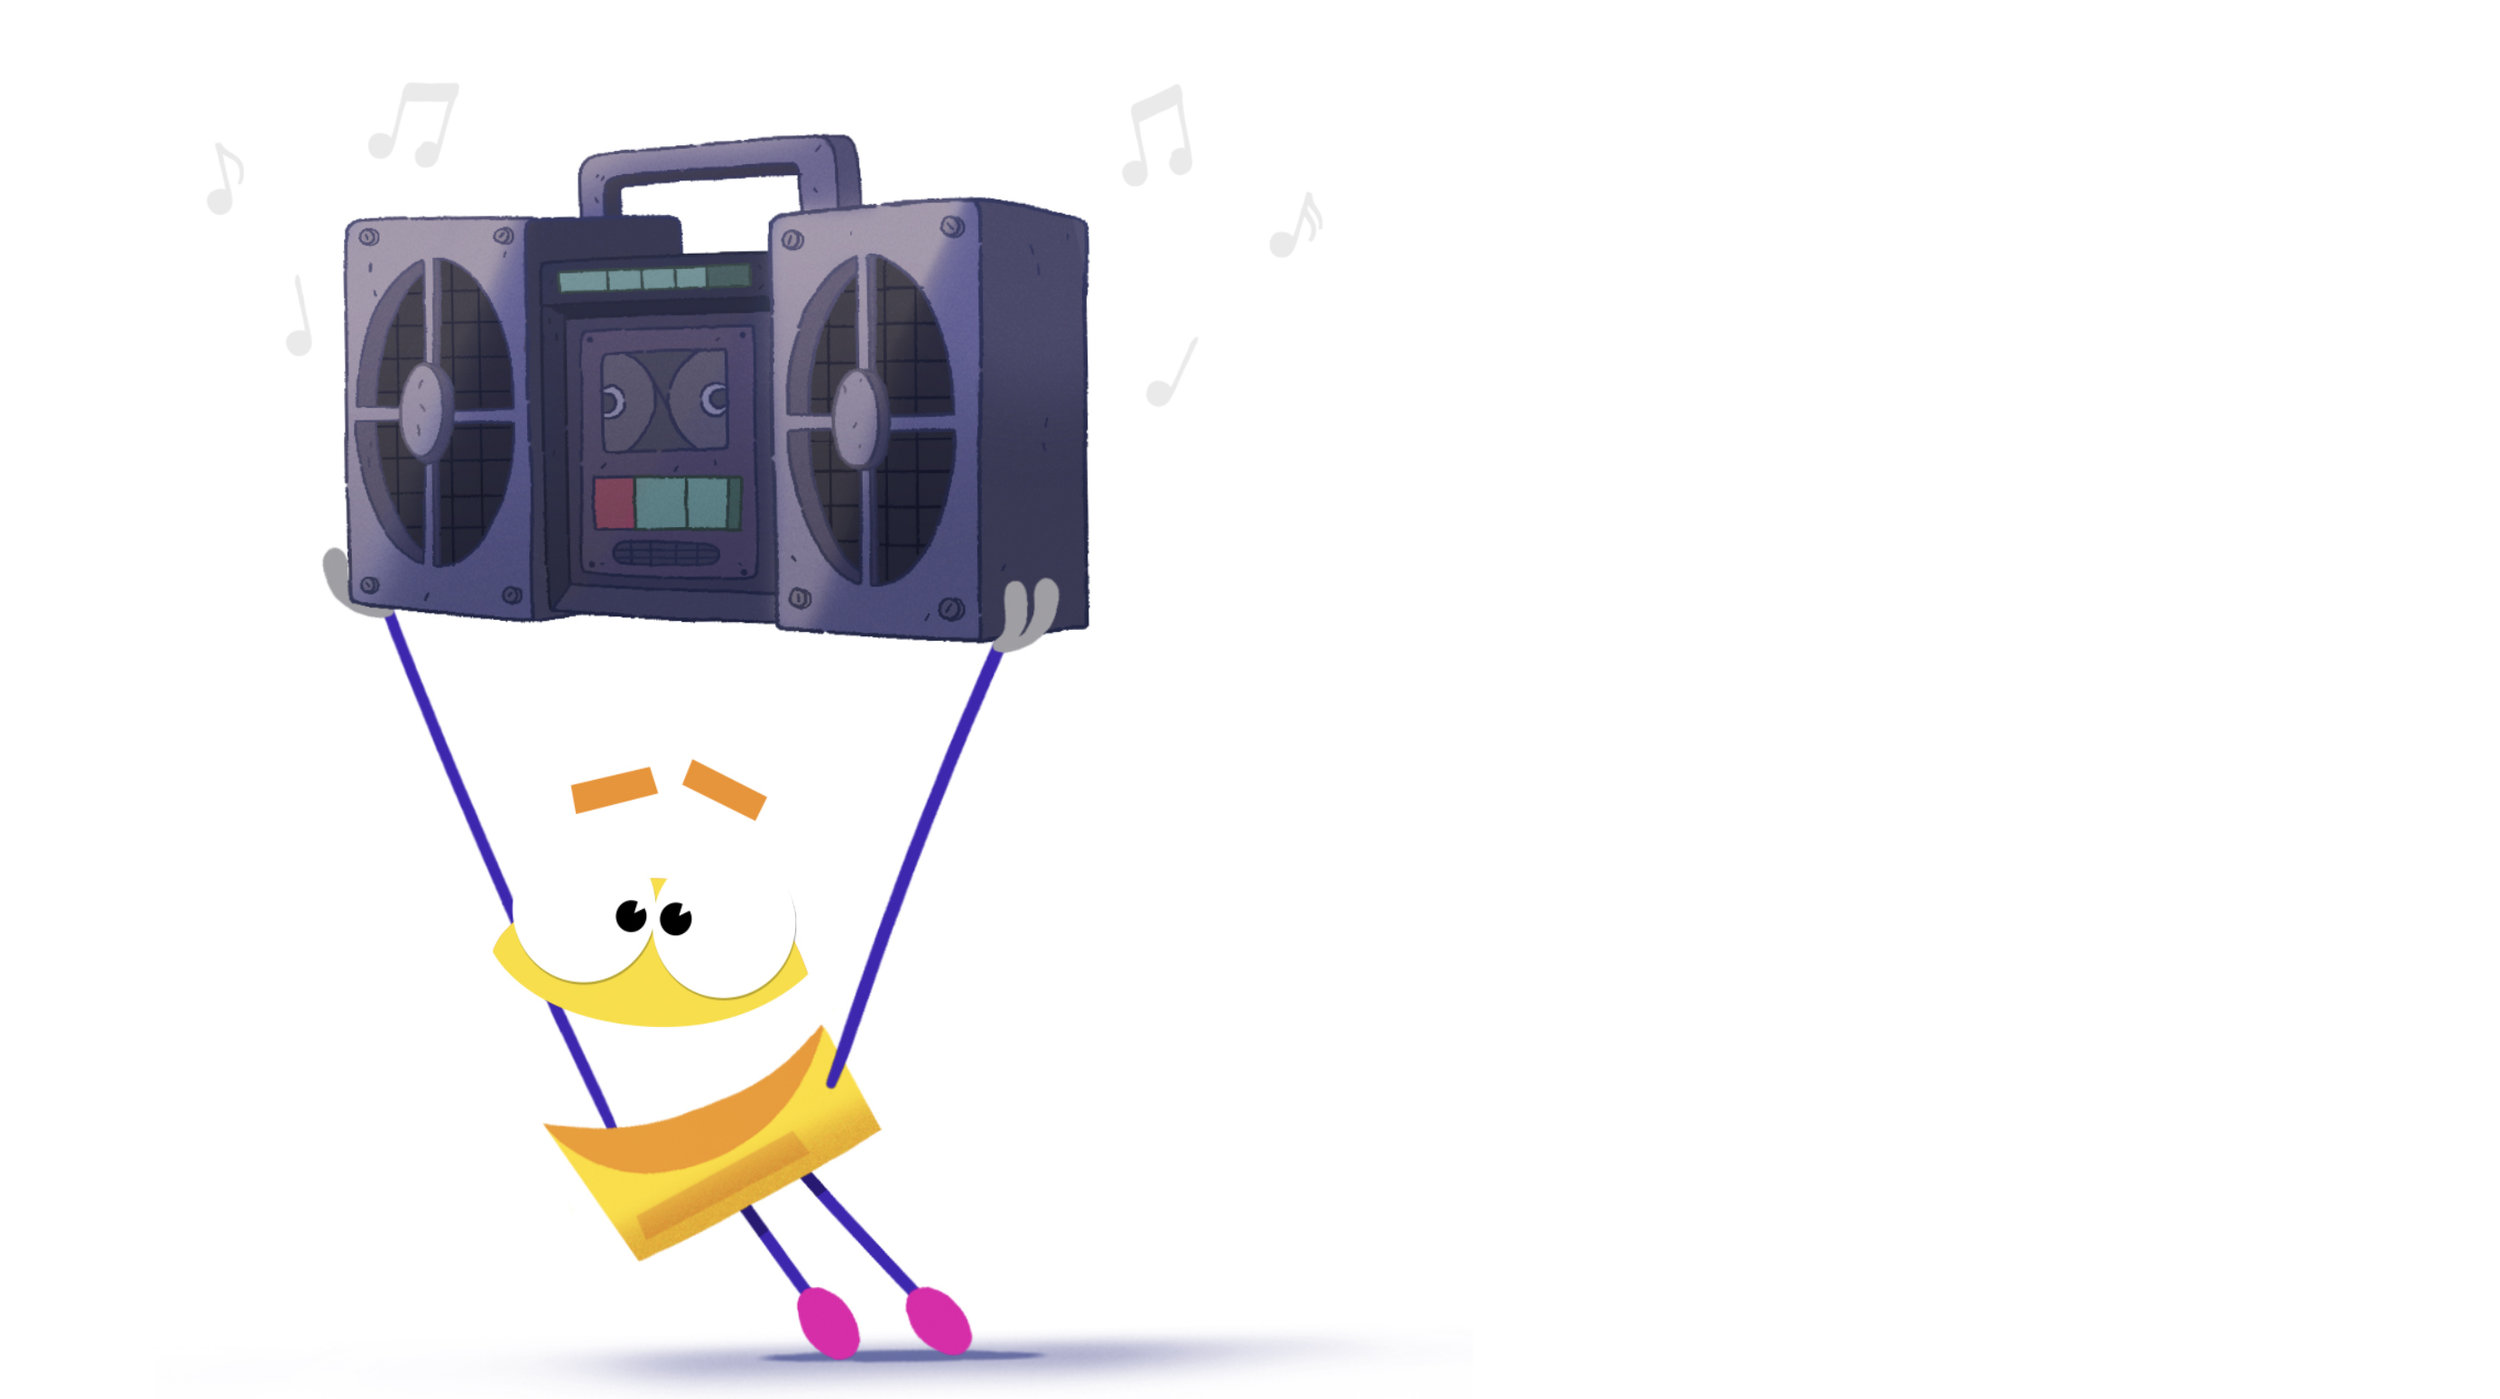 STREAM STORYBOTS MUSIC! - Listen to your favorite StoryBots tracks anytime, anywhere!